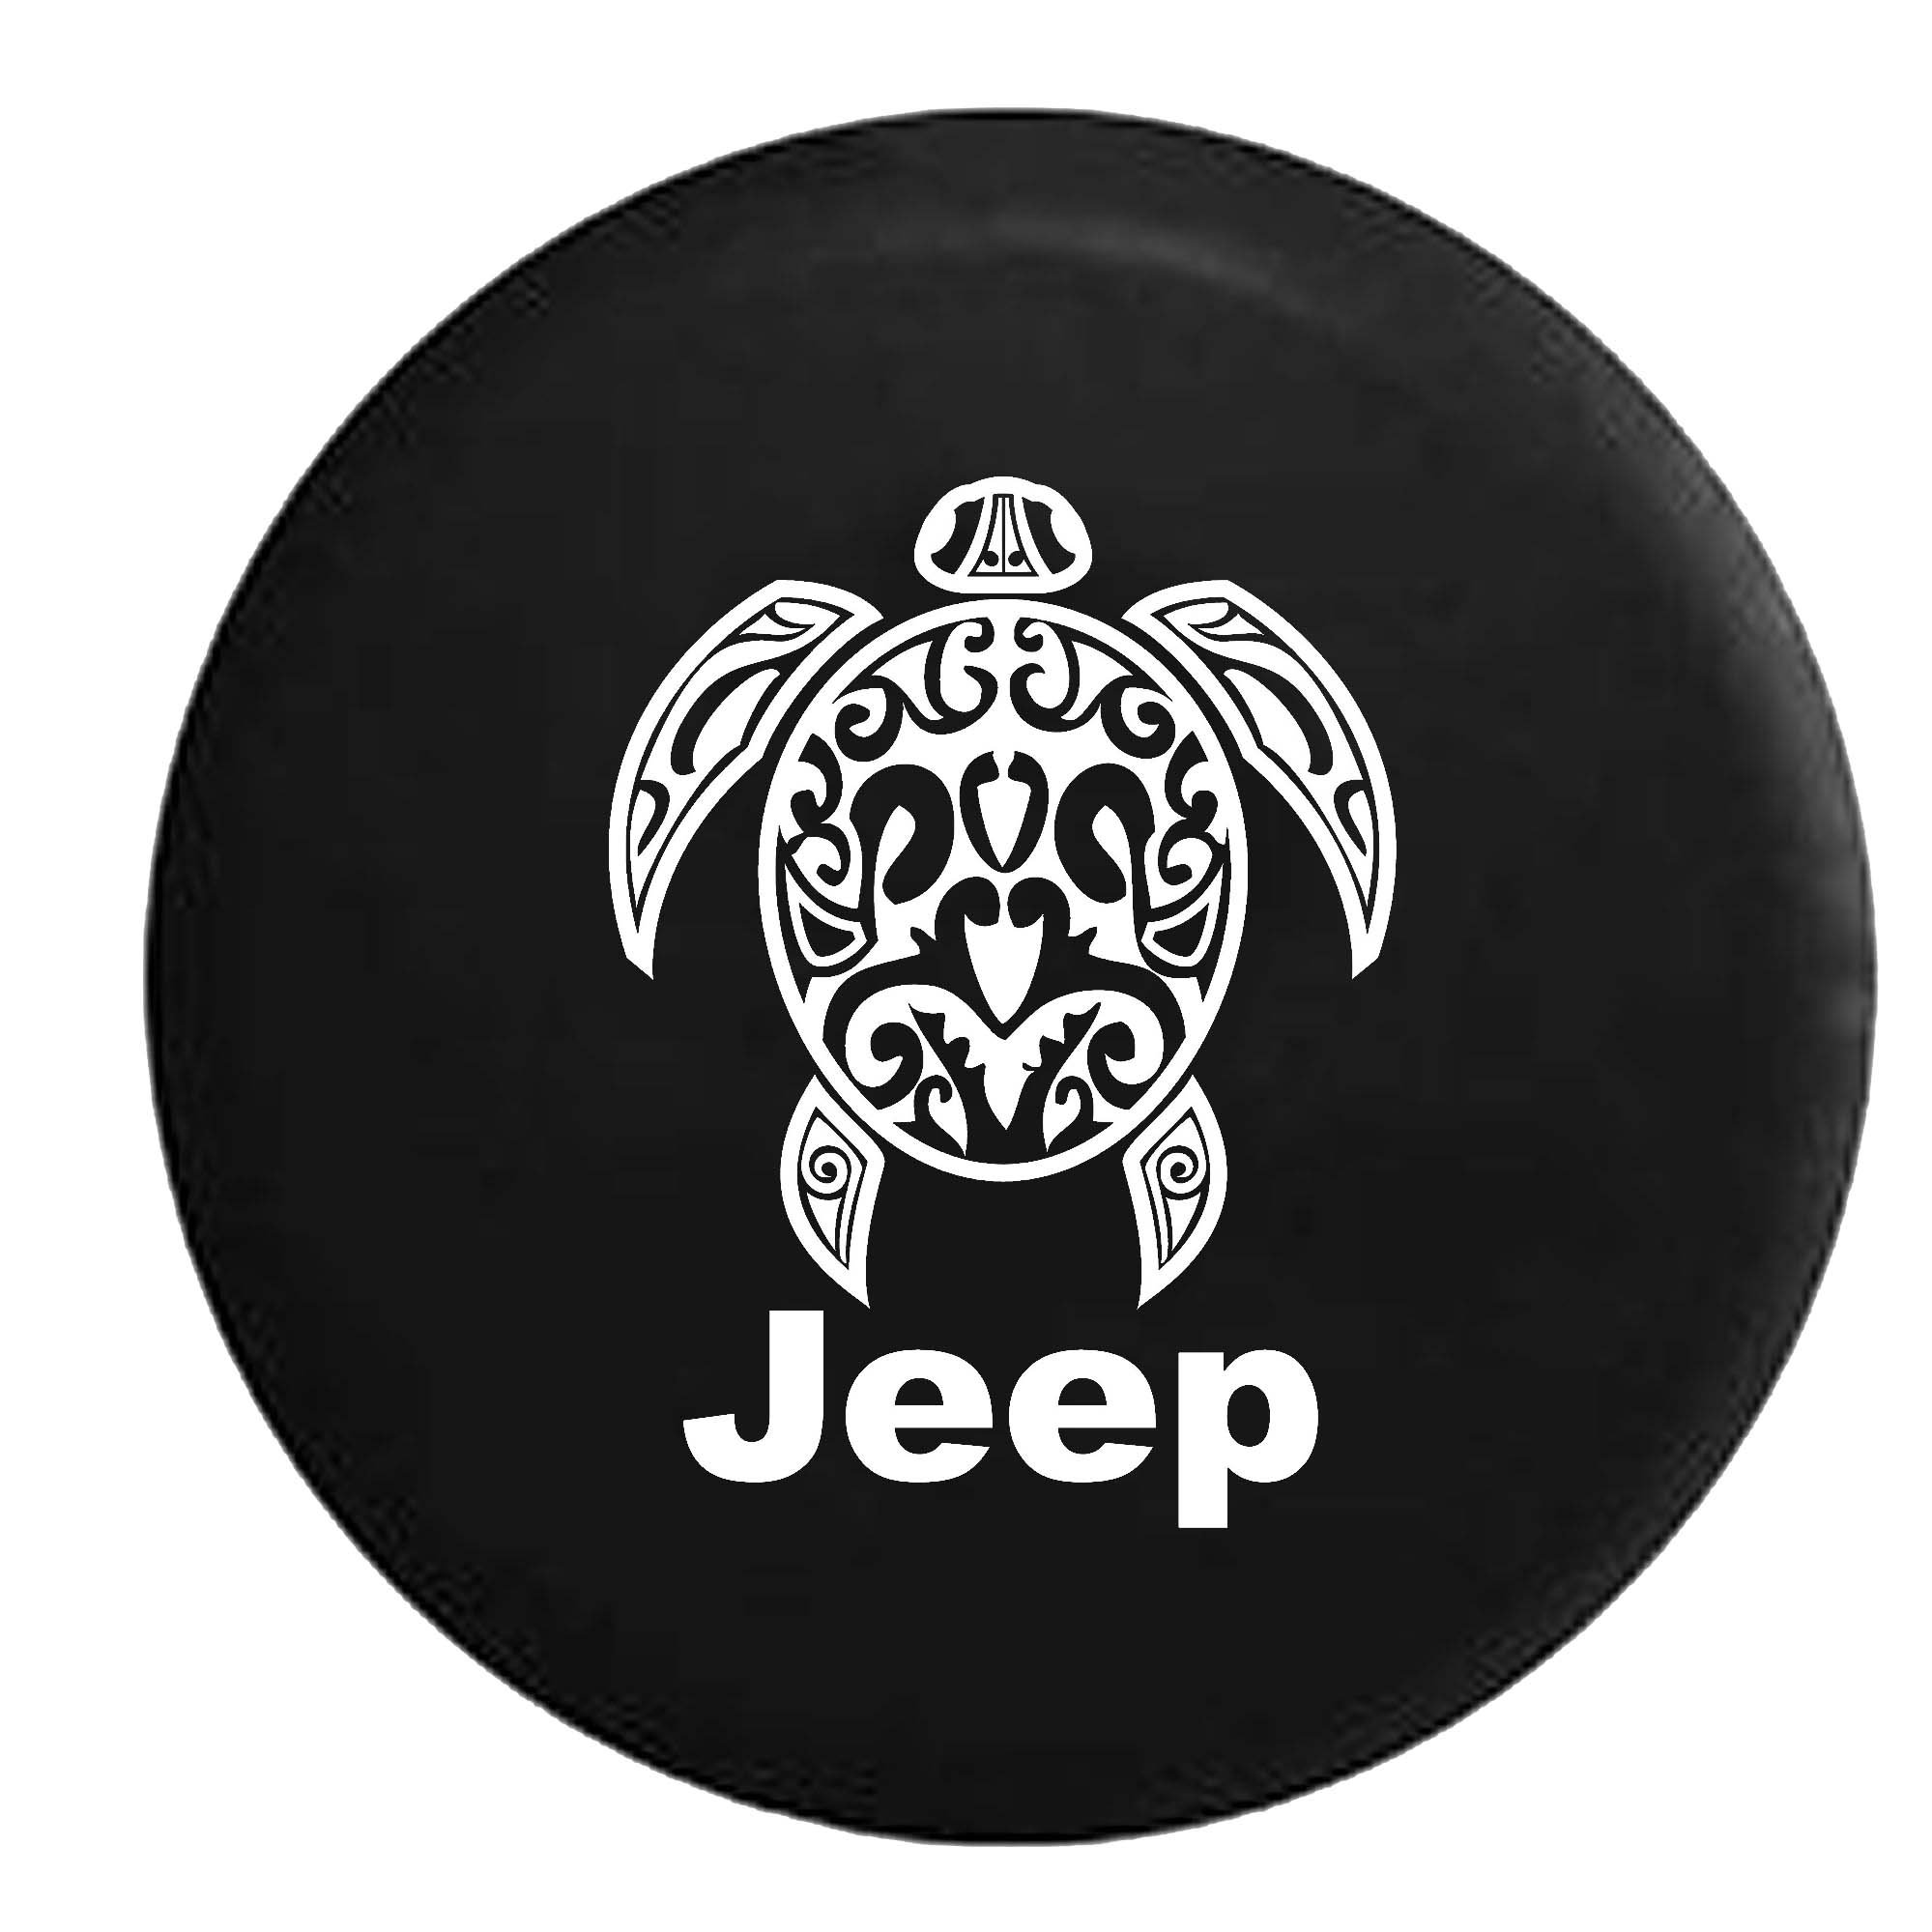 Jeep Sea Turtle Diving Beach Marine Life Spare Tire Cover Vinyl Black 33 in